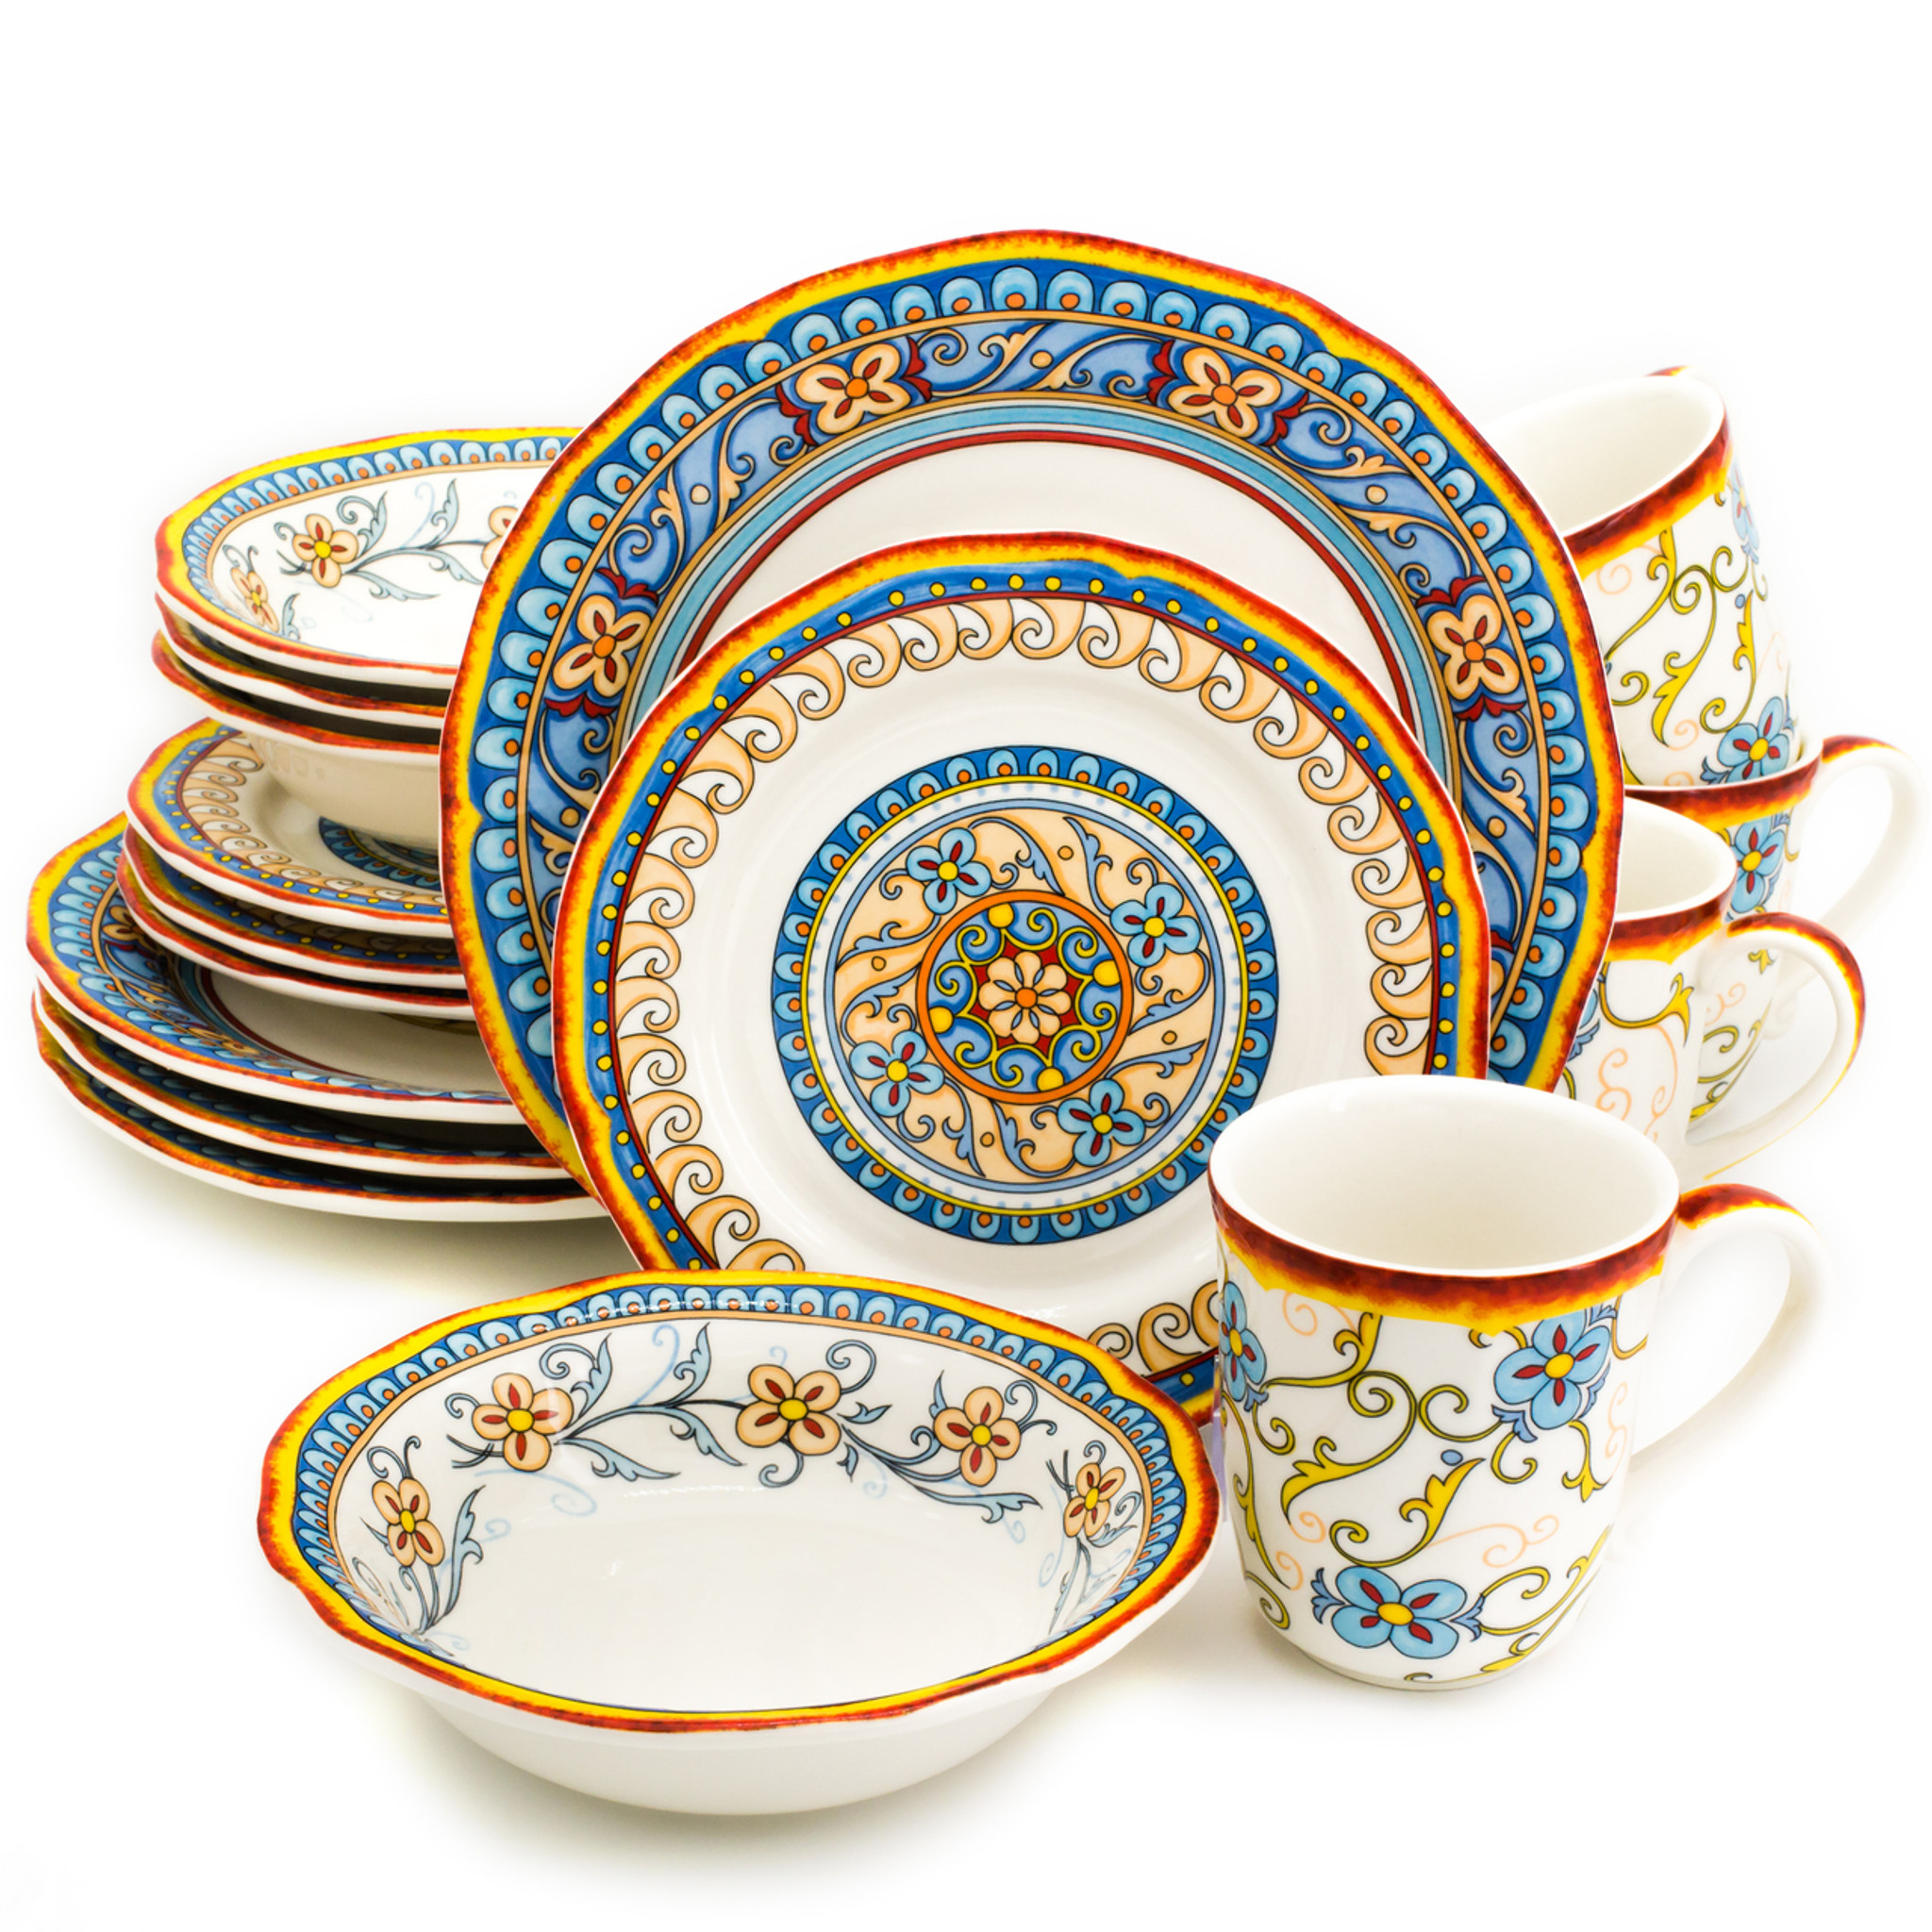 Duomo 16 Piece Dinnerware Set Service for 4  sc 1 st  Euro Ceramica & Duomo 16 Piece Dinnerware Set Service for 4 - Euro Ceramica